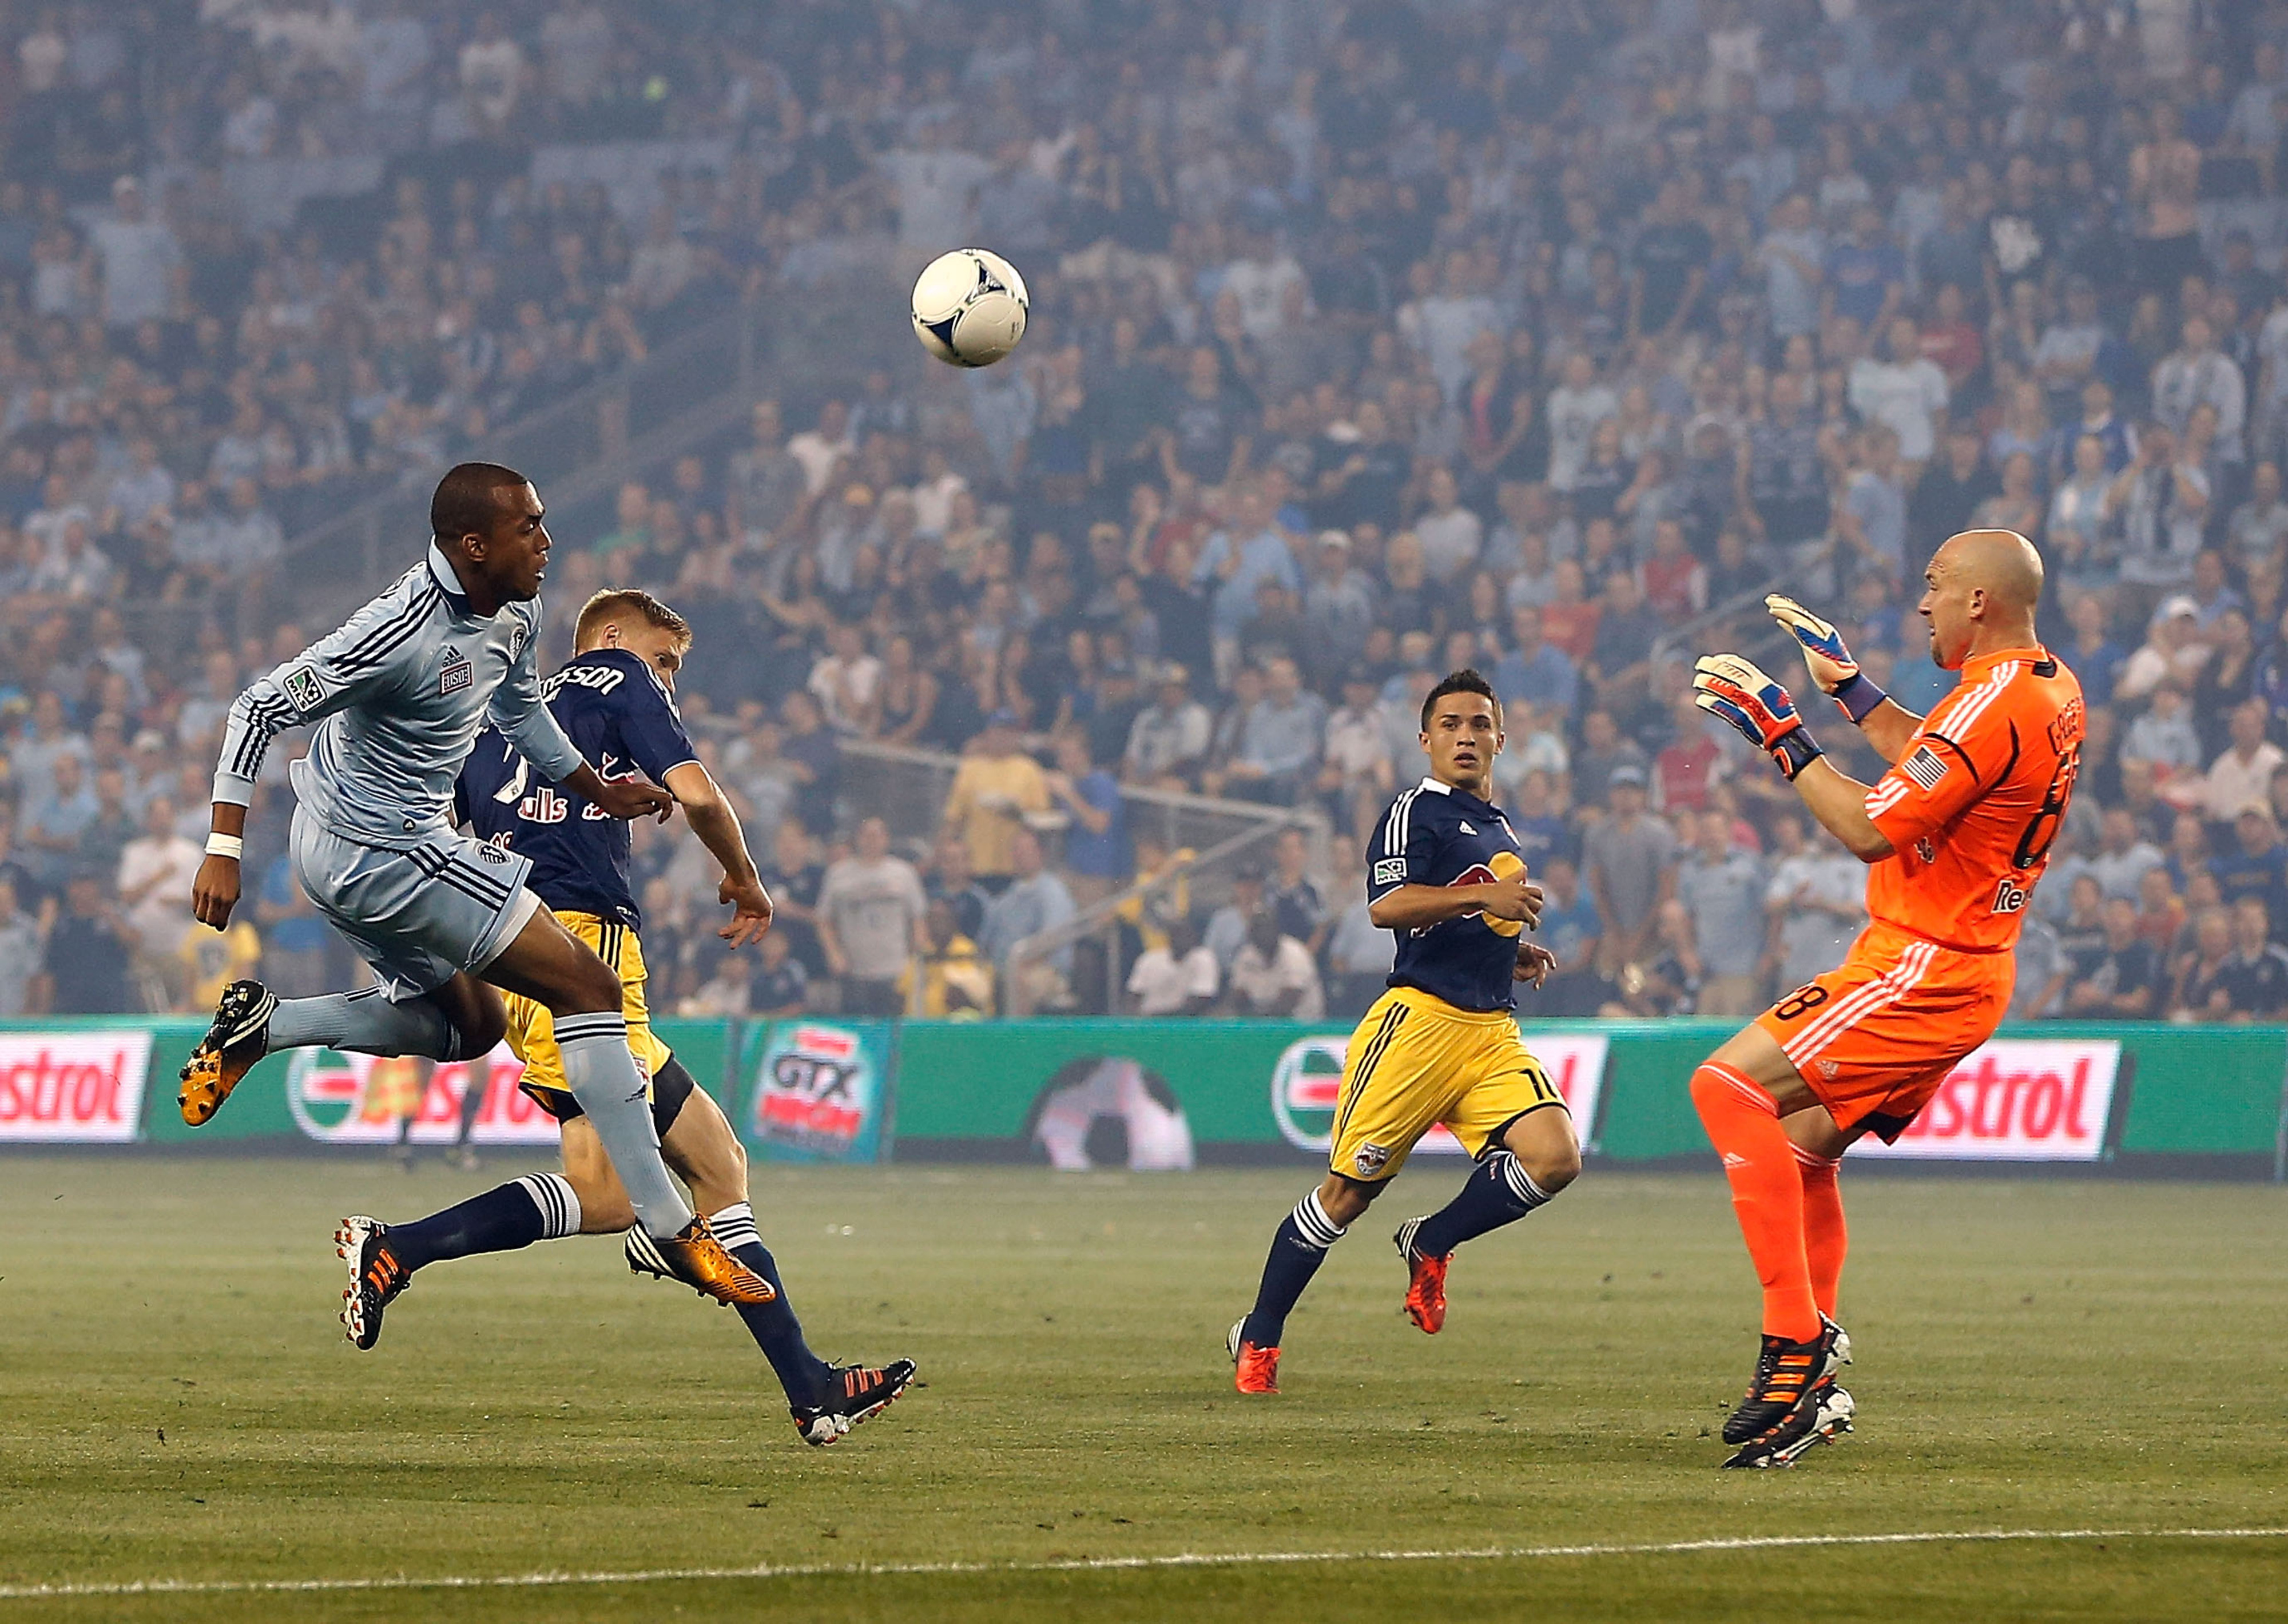 An in-form Teal Bunbury set up Kei Kamara for the match's opening goal.  Bunbury would leave the game in the 14th minute with a sprained knee. (Photo by Jamie Squire/Getty Images)